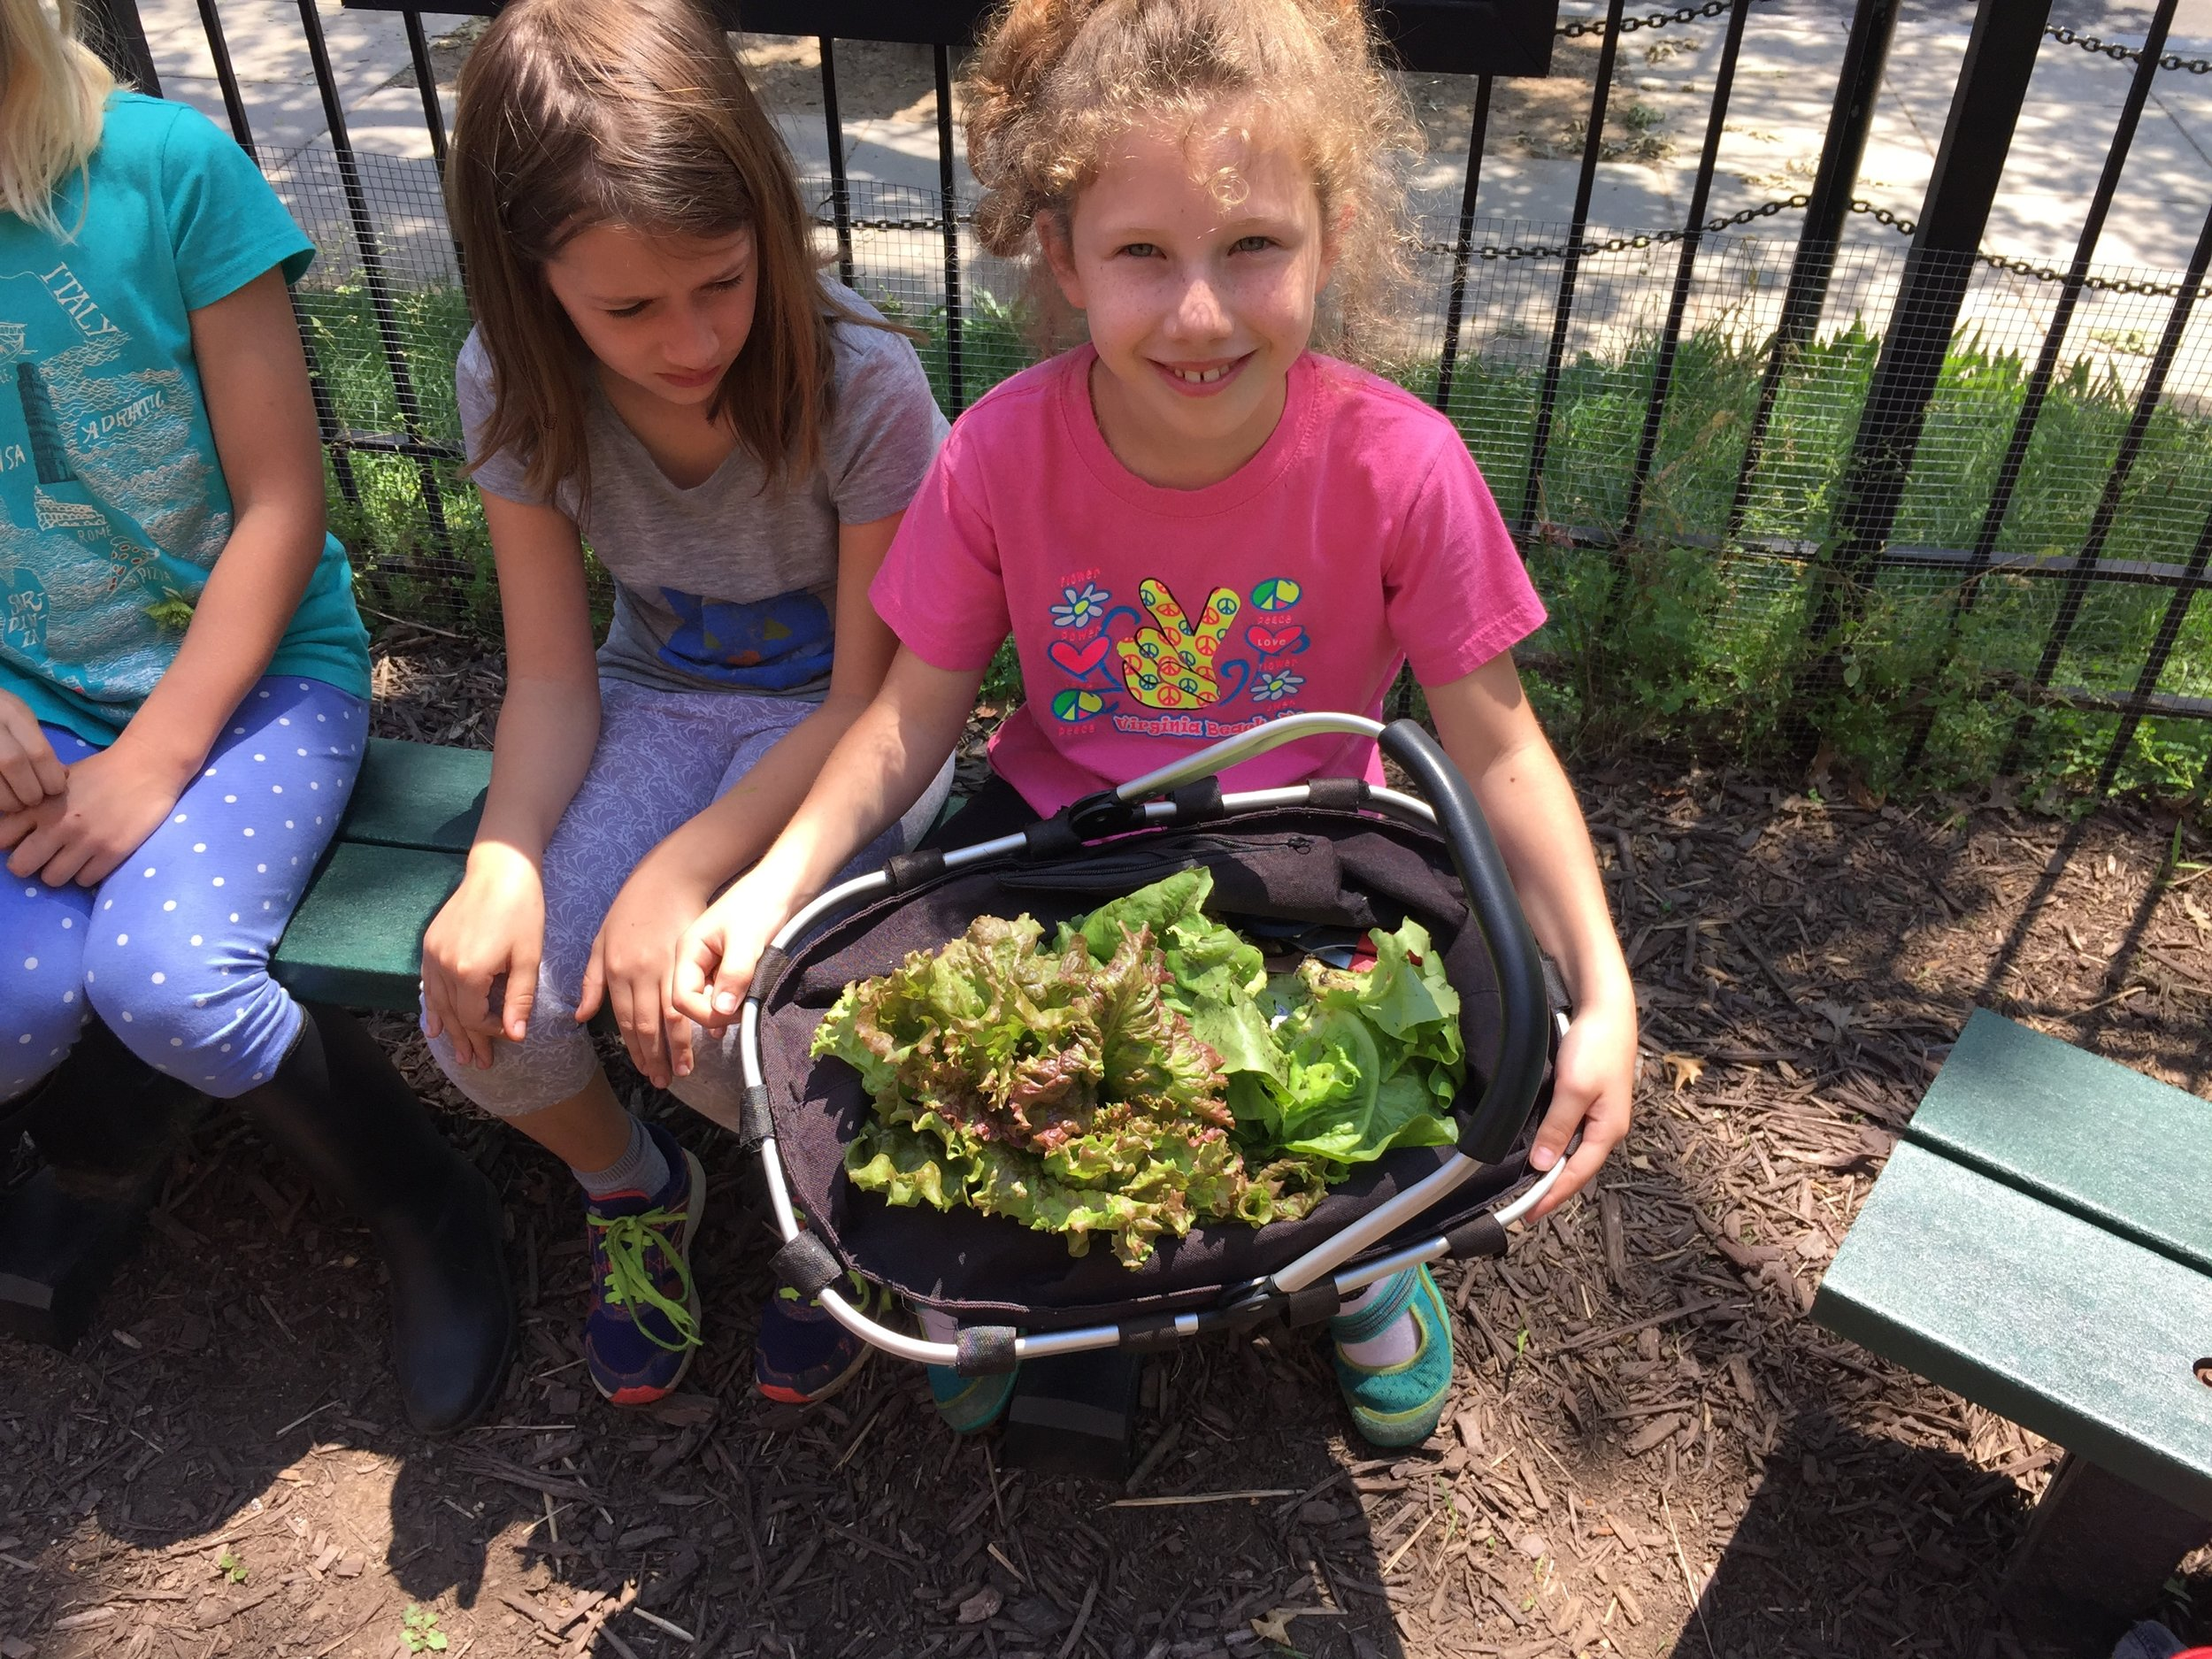 Watkins Elementary School students enjoying the FoodPrints program, which integrates gardening, cooking, and nutrition in to the school day. FoodPrints is supported by the Cluster School PTA.